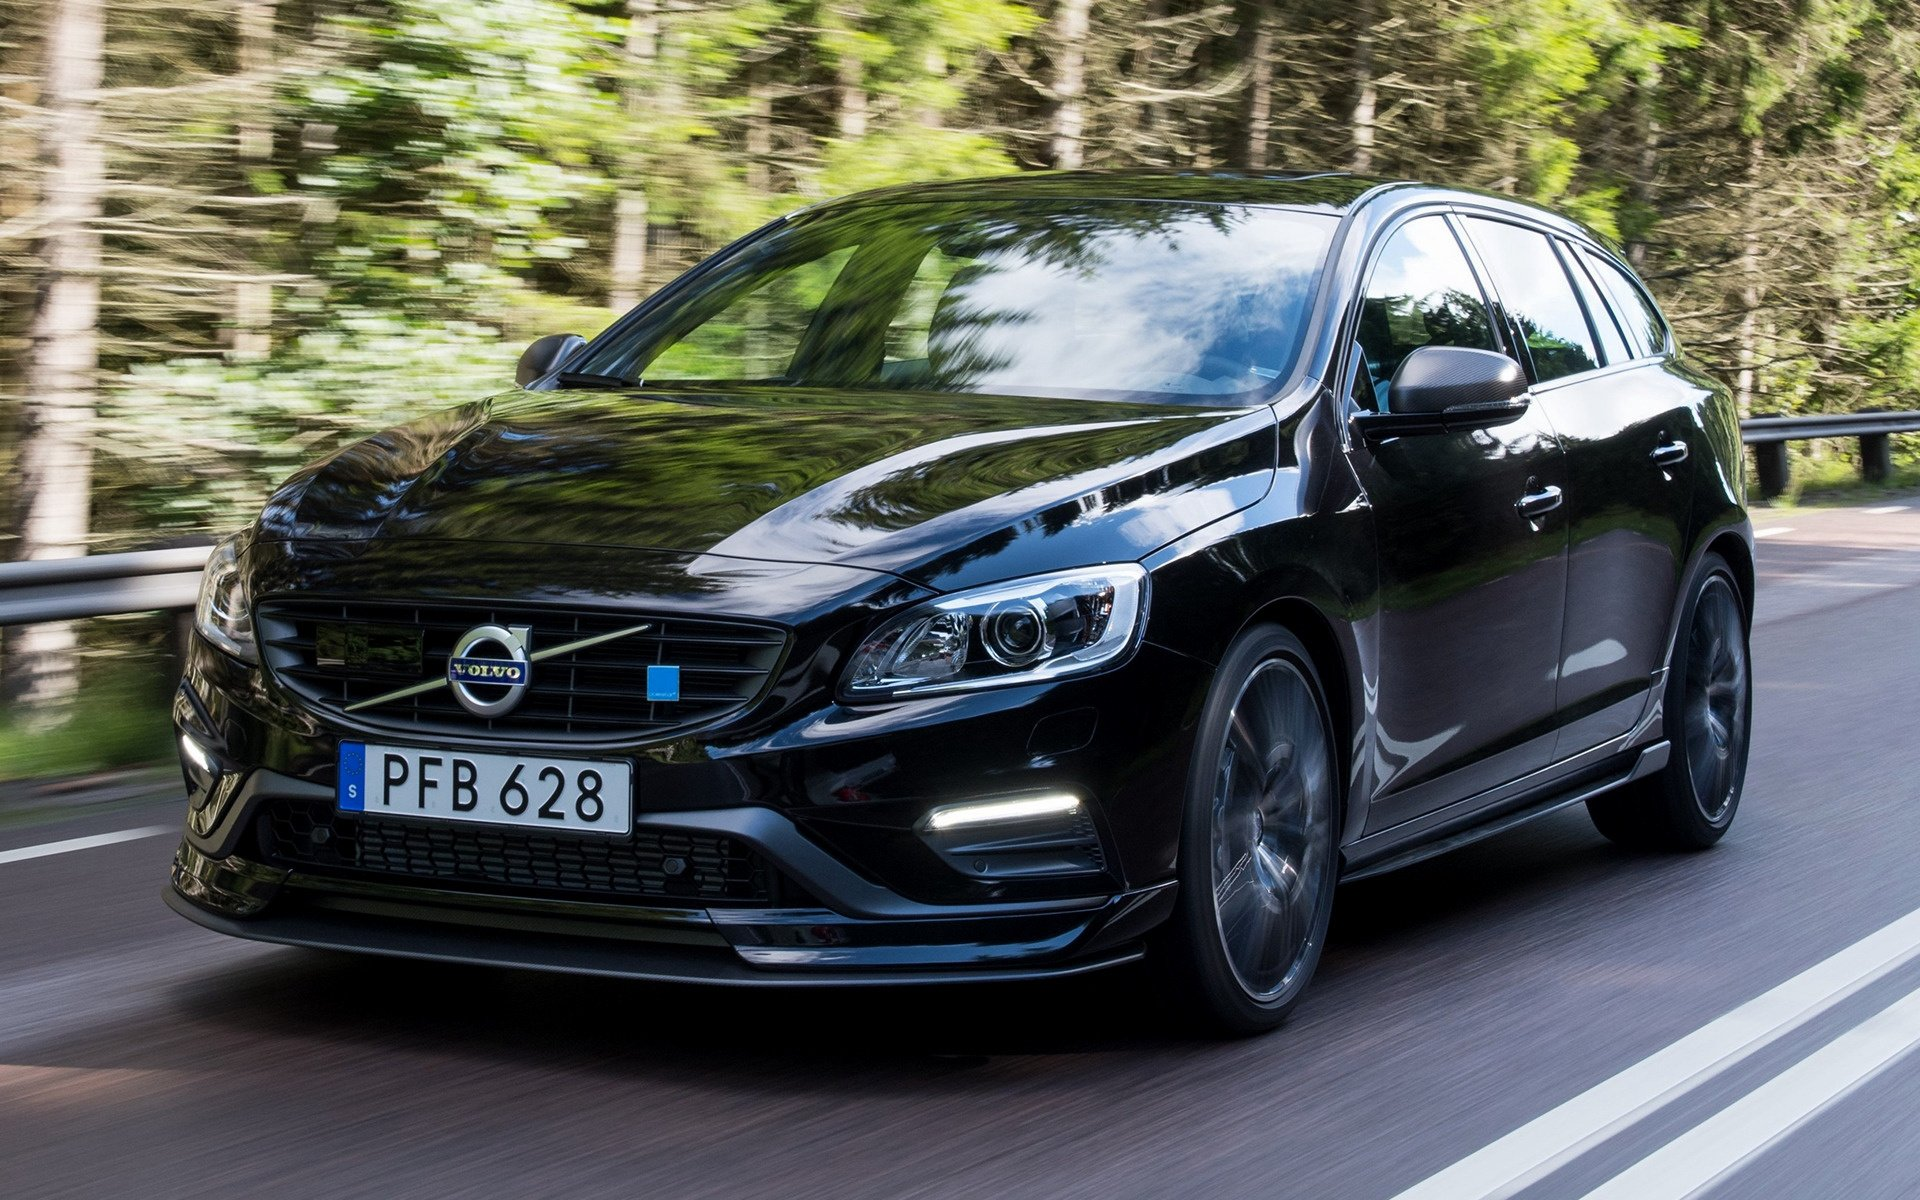 2017 Volvo V60 Polestar   Wallpapers and HD Images Car Pixel 1920x1200